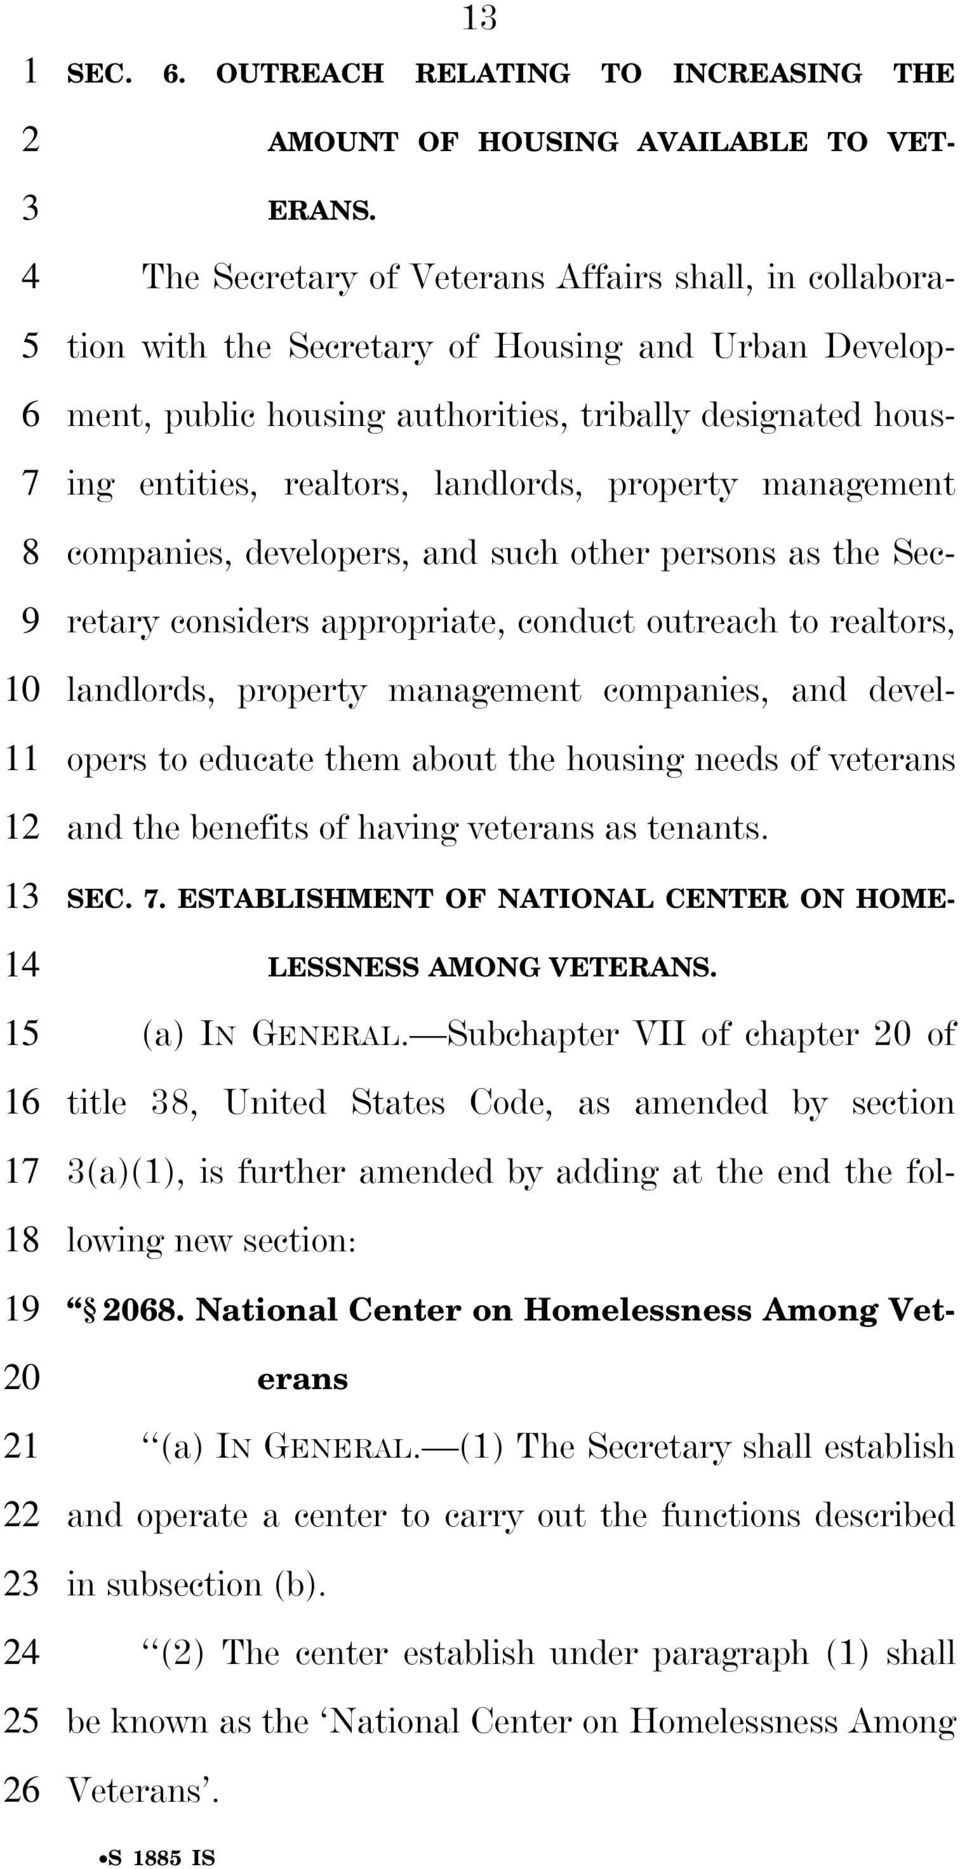 The Secretary of Veterans Affairs shall, in collaboration with the Secretary of Housing and Urban Development, public housing authorities, tribally designated housing entities, realtors, landlords,